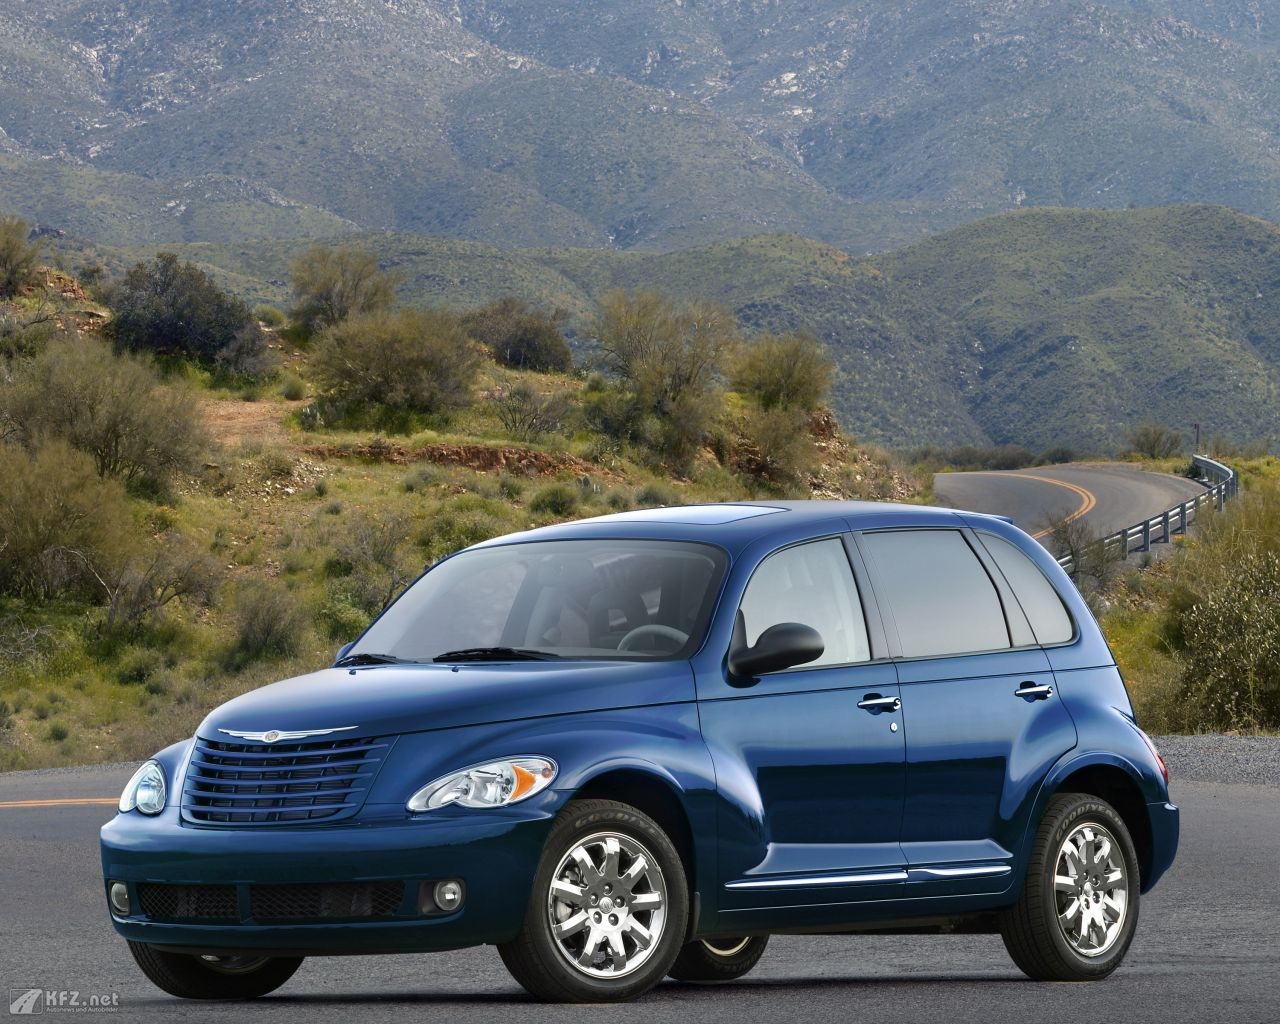 chrysler-pt-cruiser-1280x1024-4